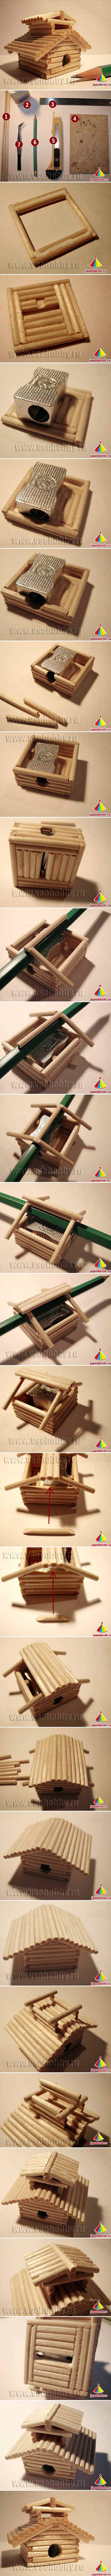 How To Make Chinese House Sharpener step by step DIY tutorial instructions